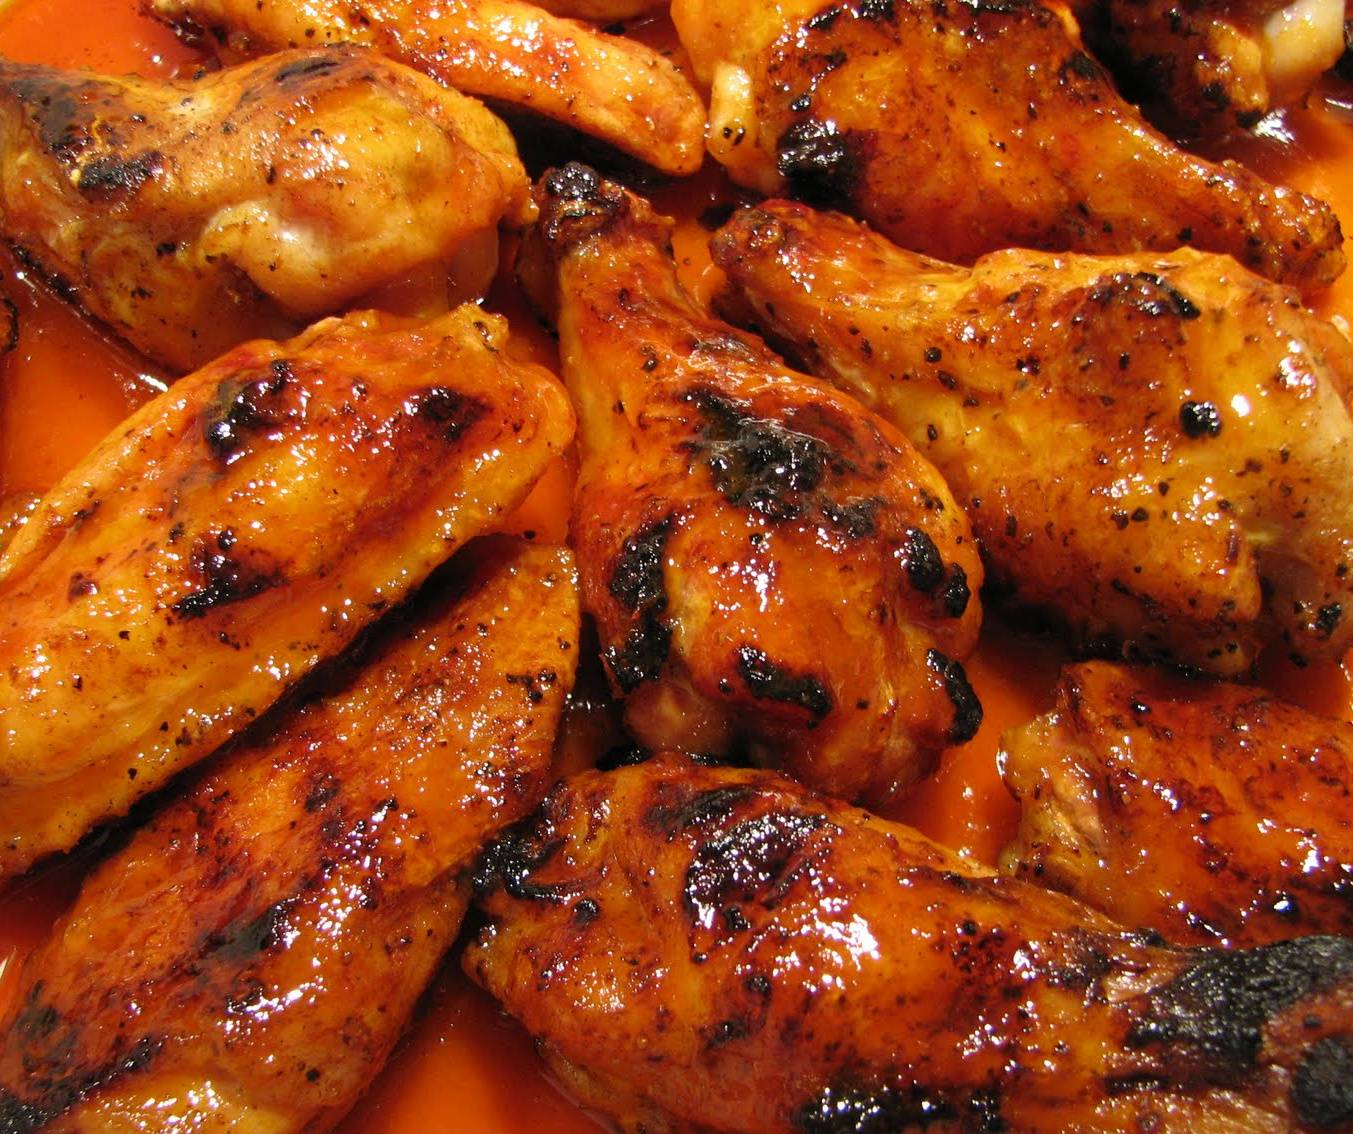 1353x1134 Chicken Wings wallpaper by NerdyJustin - 43 - Free on ZEDGE™